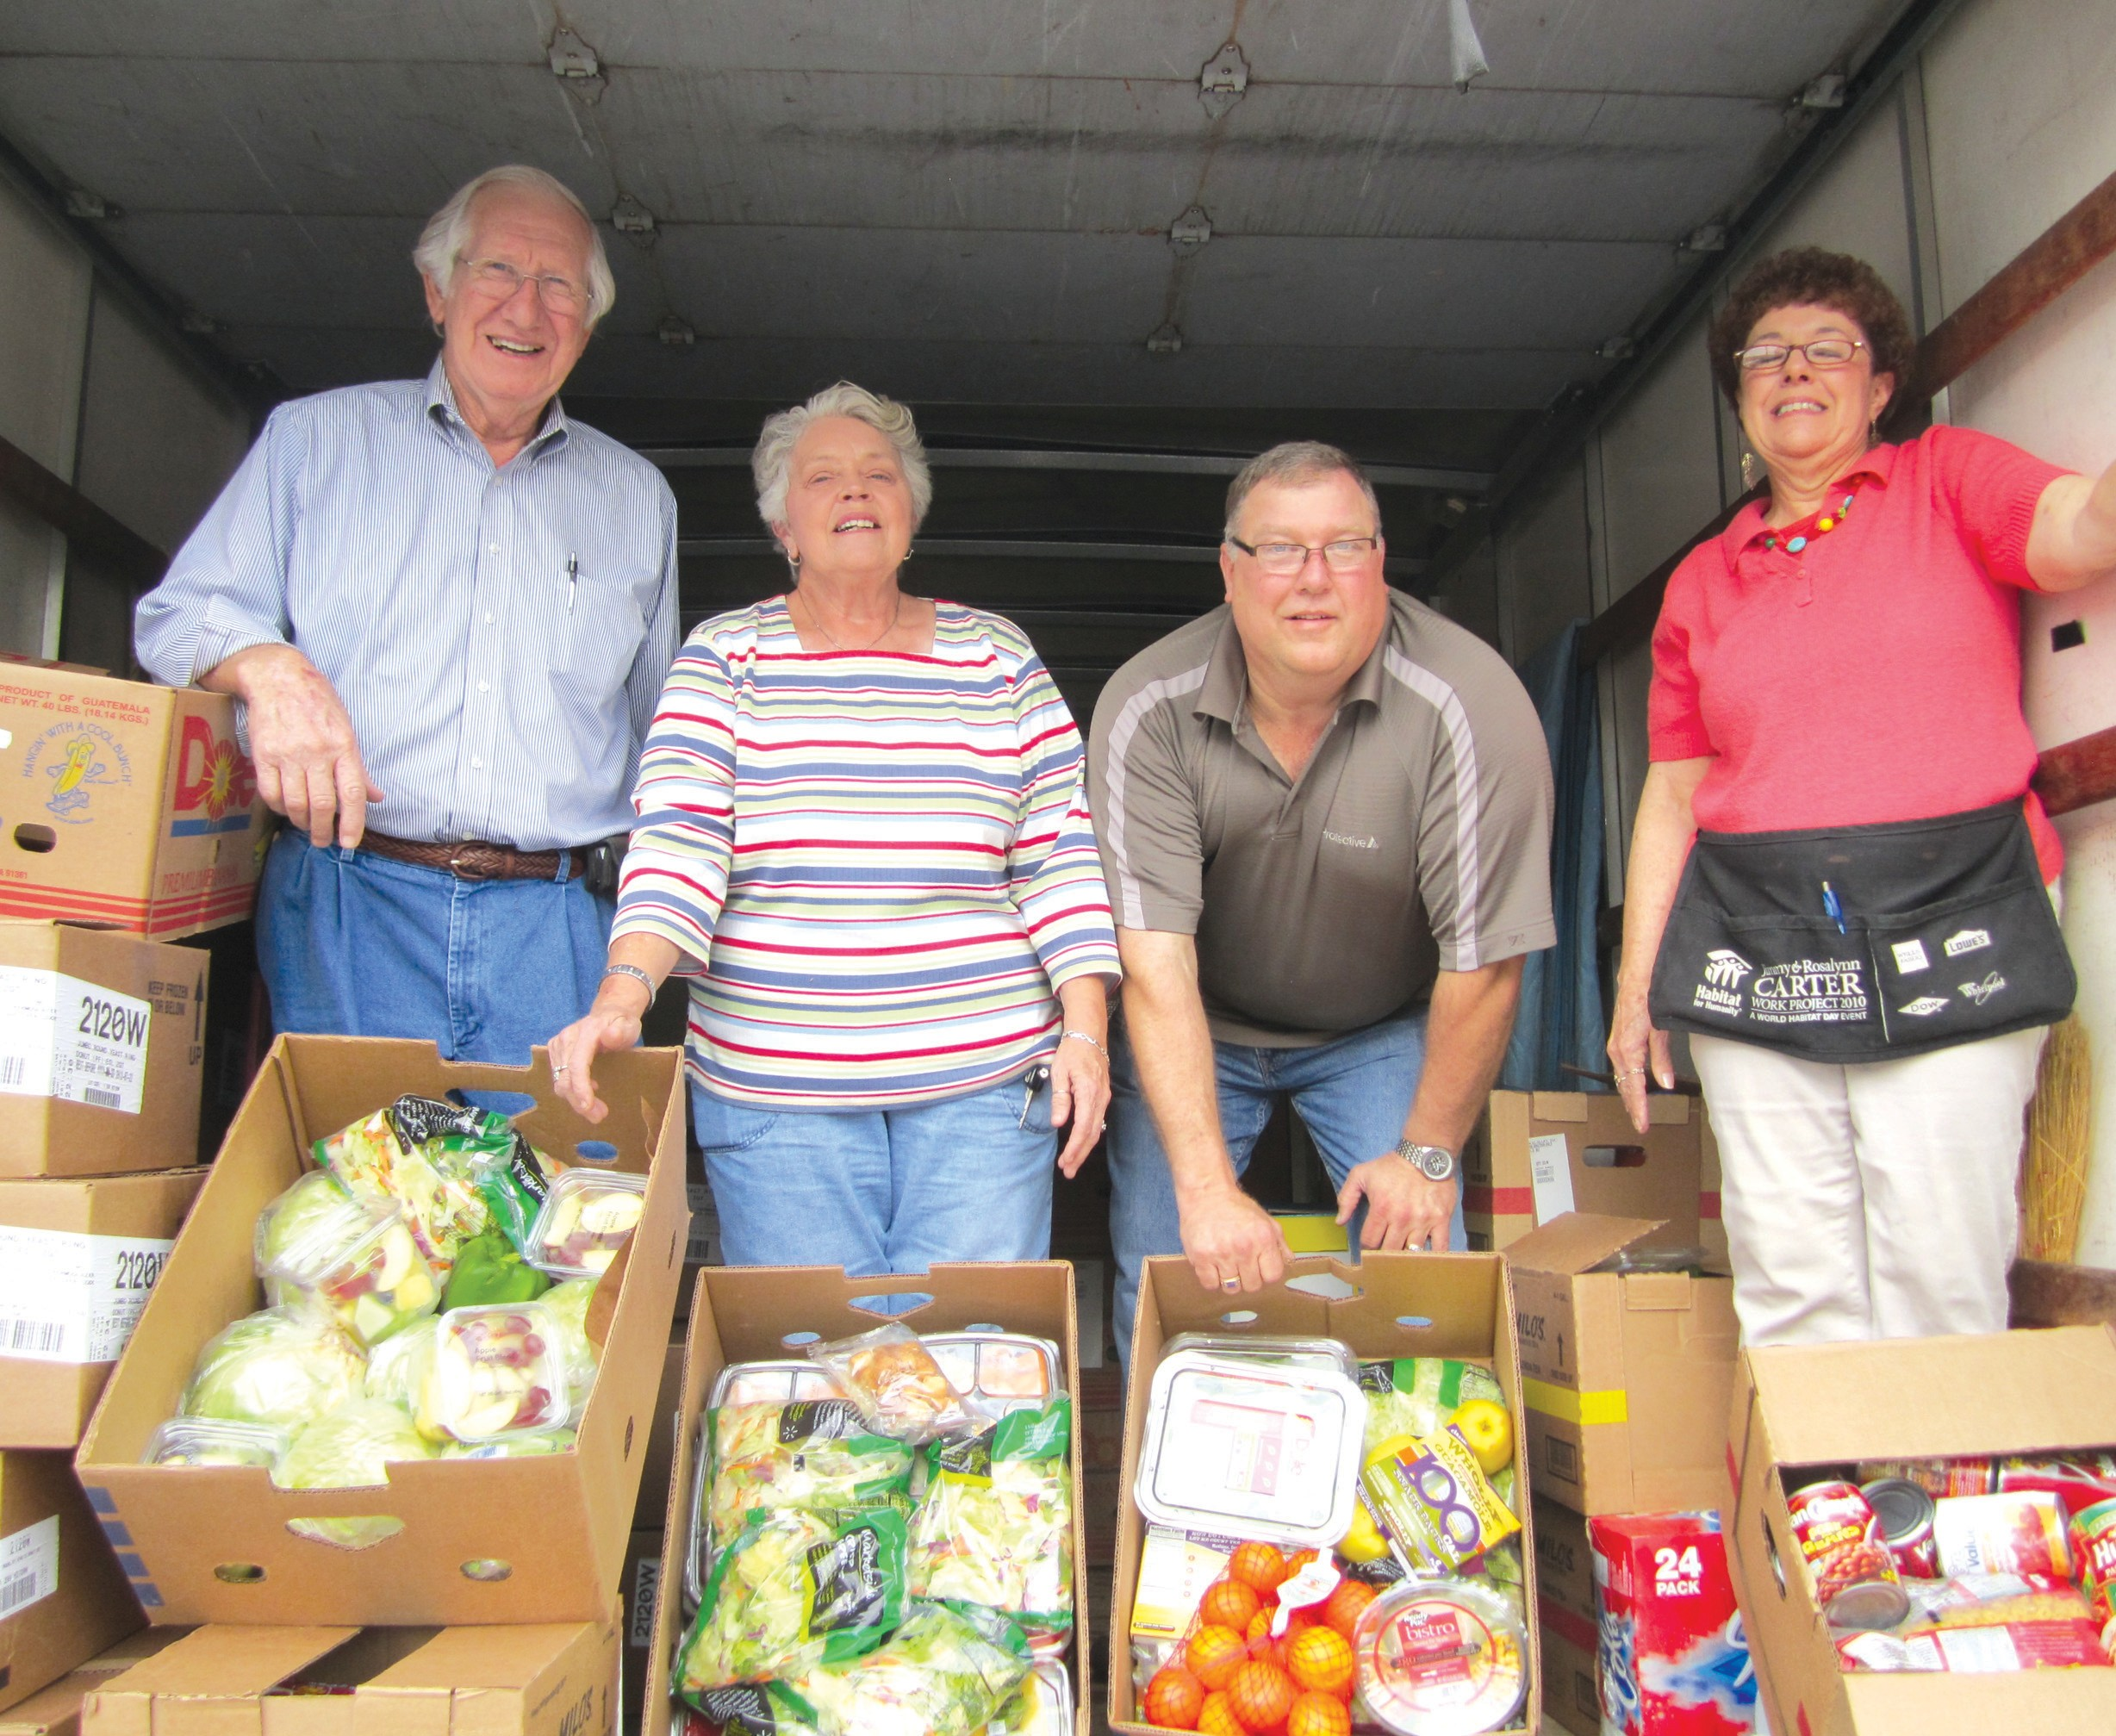 "What is the retail value of food donated by Walmart to Hope House since August 2010? From left, Bud Jones, Judy Snelson, Jim King, and Dianne Stevenson display some of the fresh produce and canned goods contributed regularly by Walmart to the Hope House food bank. Jones, Hope House director, said the pressure on the agency to provide food and ""everything you can think of"" is increasing every week. ""We have about 30 walk-ins and 50 or more calls a day from people asking for help with food, prescriptions, propane, power bills, tires, clothes, cooking utensils, furniture, appliances, baby sitters, dental bills, school supplies..."" The list is endless. ""The county is in the worst financial condition in my lifetime,"" Jones added. ""We have people who have been our strong supporters, who are now coming in for help. People that were hanging on last year trying to ride it out, have nothing to hang onto any more. So far, thanks to Blount County people, our resources are holding out, but we're being asked to do more,"" he said. – Ron Gholson"